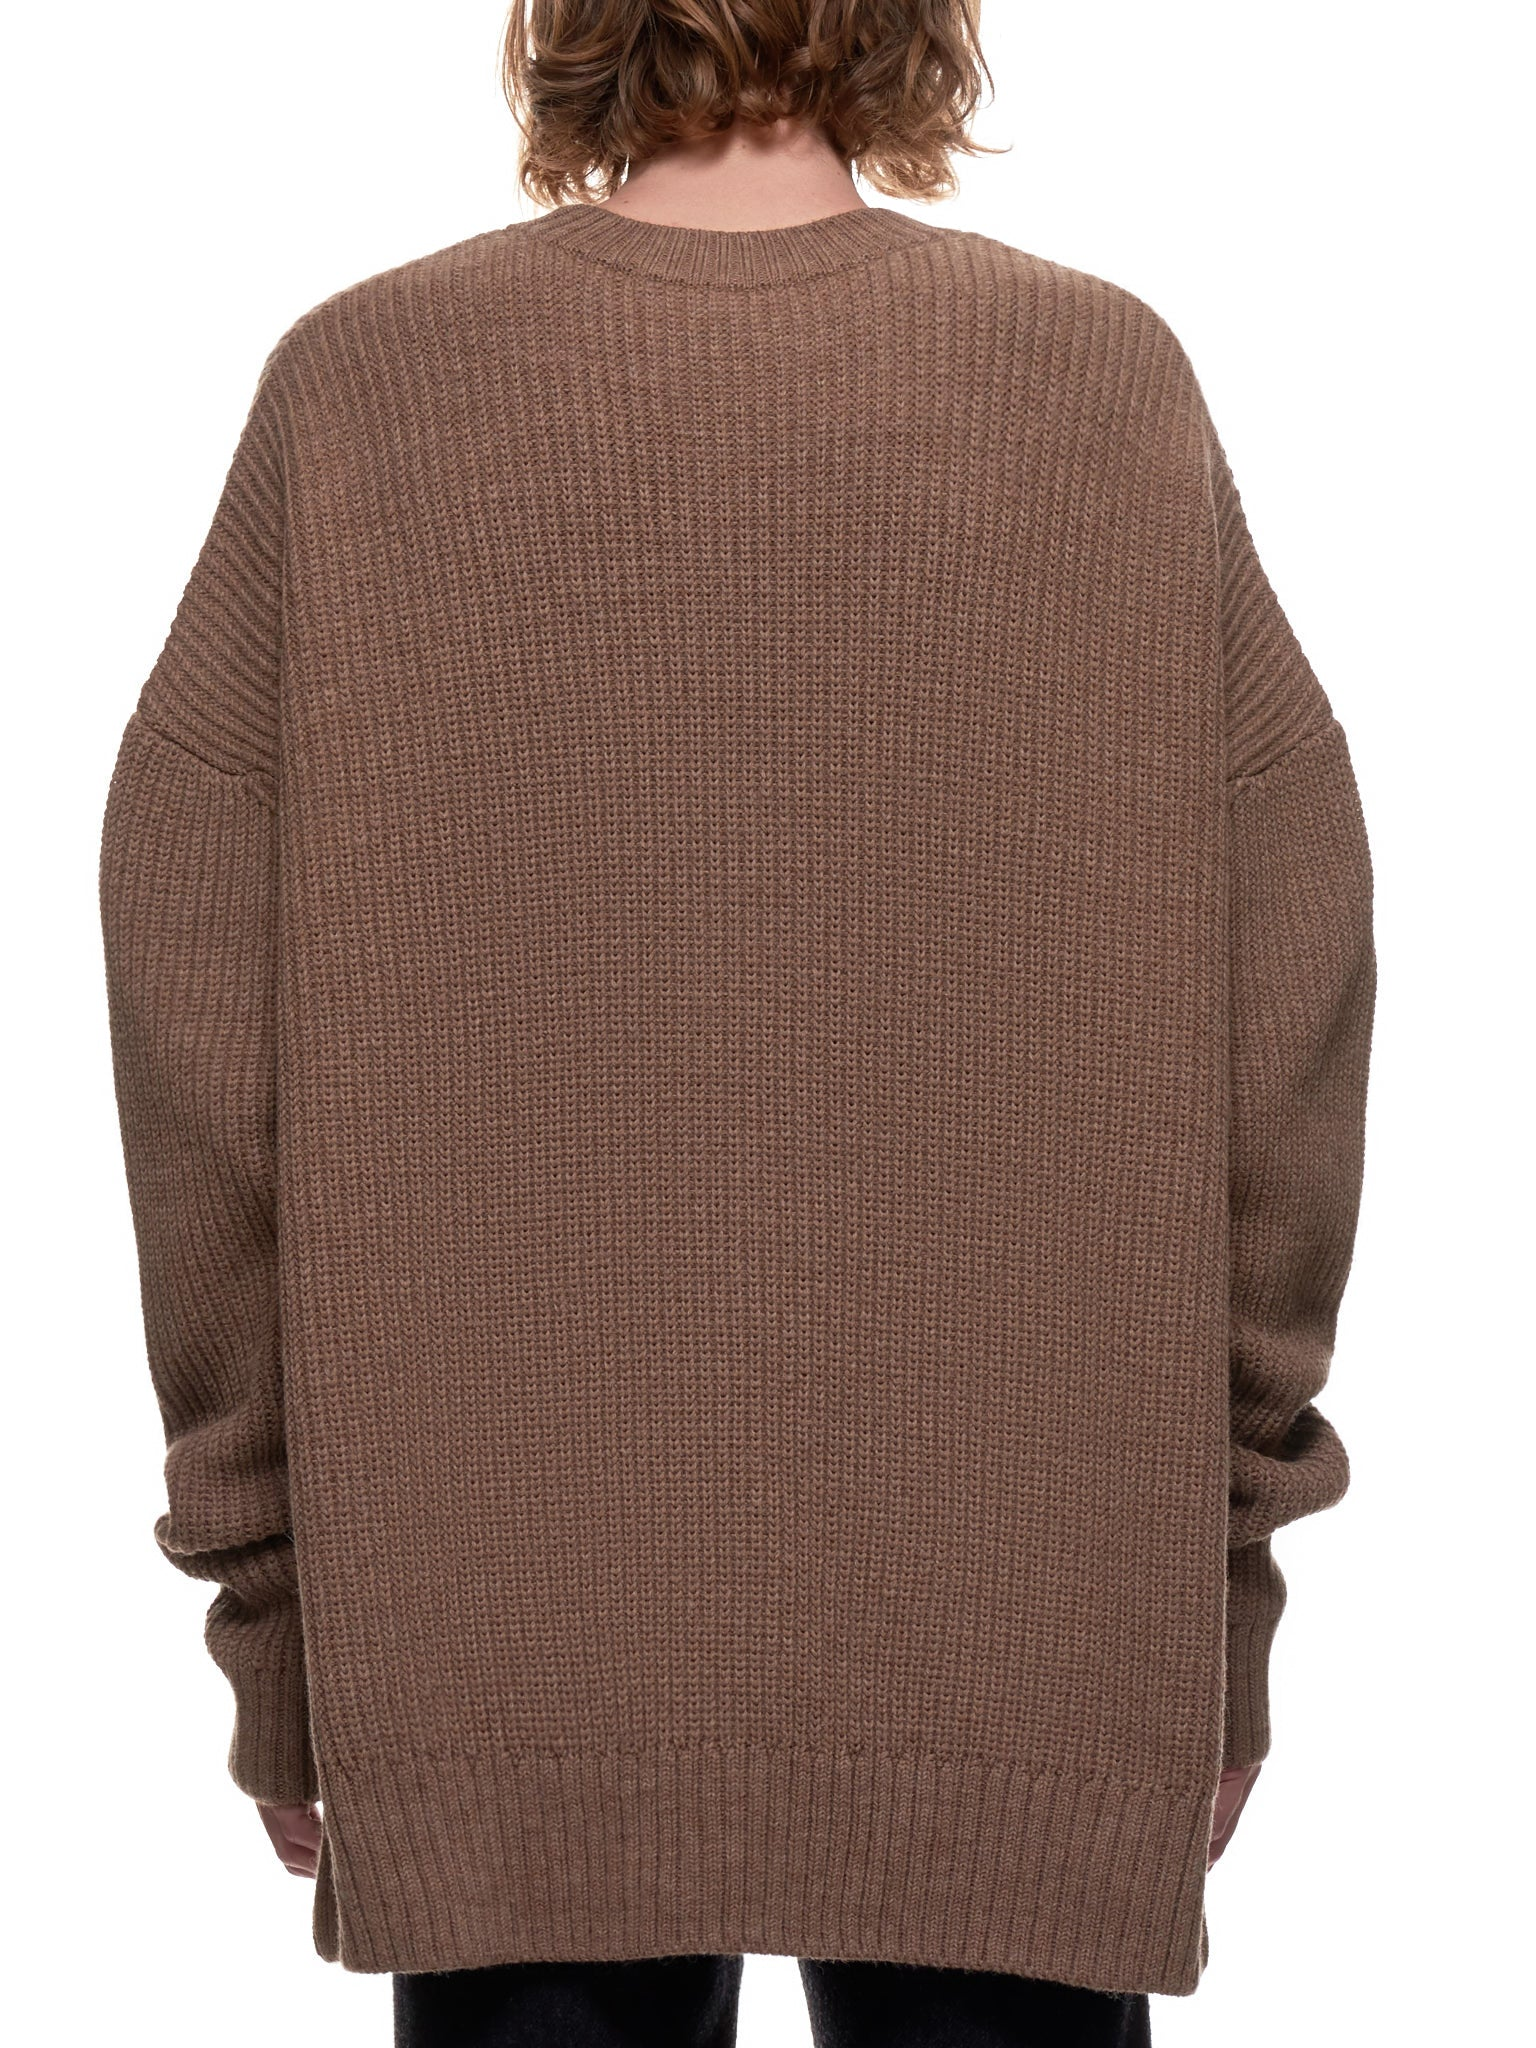 John Lawrence Sullivan Sweater | H.Lorenzo Back